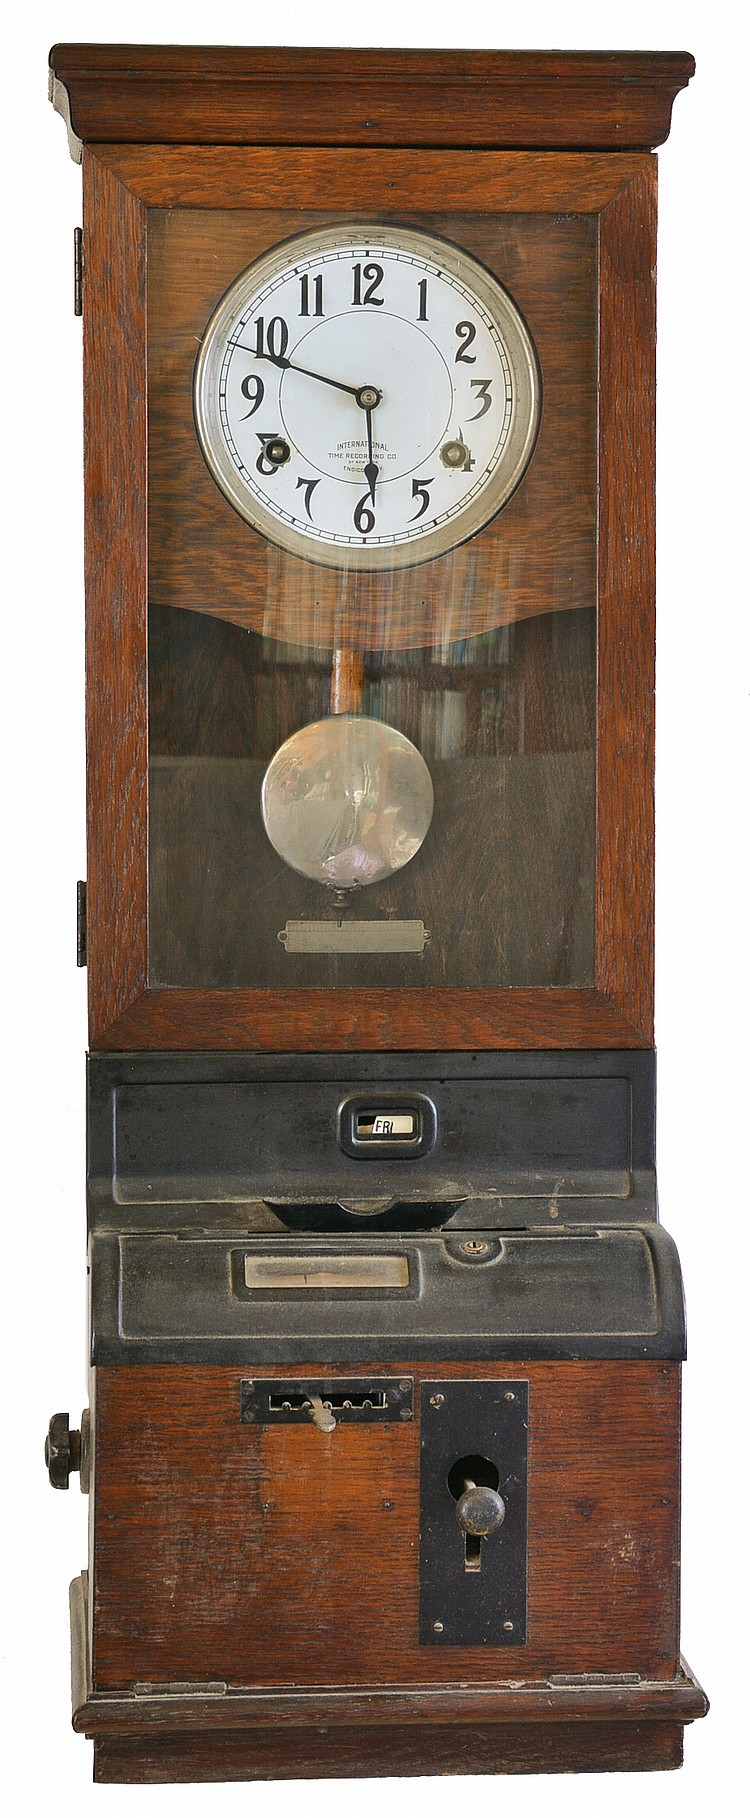 Clocks- 2 (Two) International Time Recording Co., Endicott, New York punch clocks in oak cases